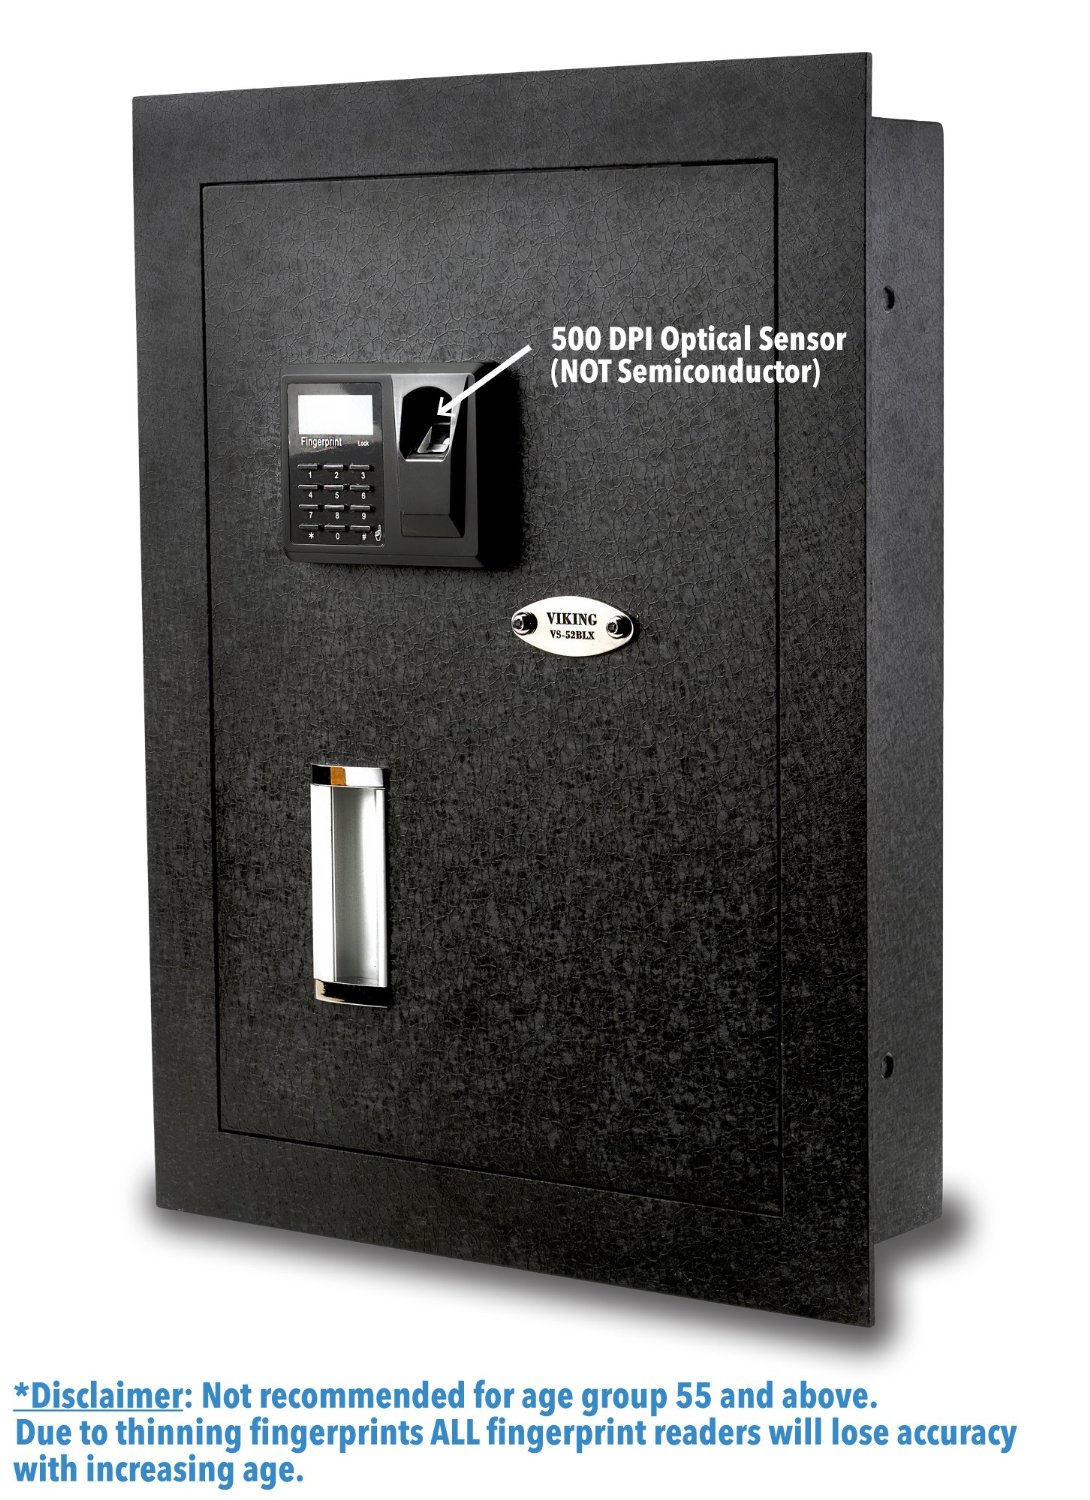 Viking Security Safe VS-52BLX Biometric Fingerprint Hidden Wall Safe seen here- one of the best hidden gun safes